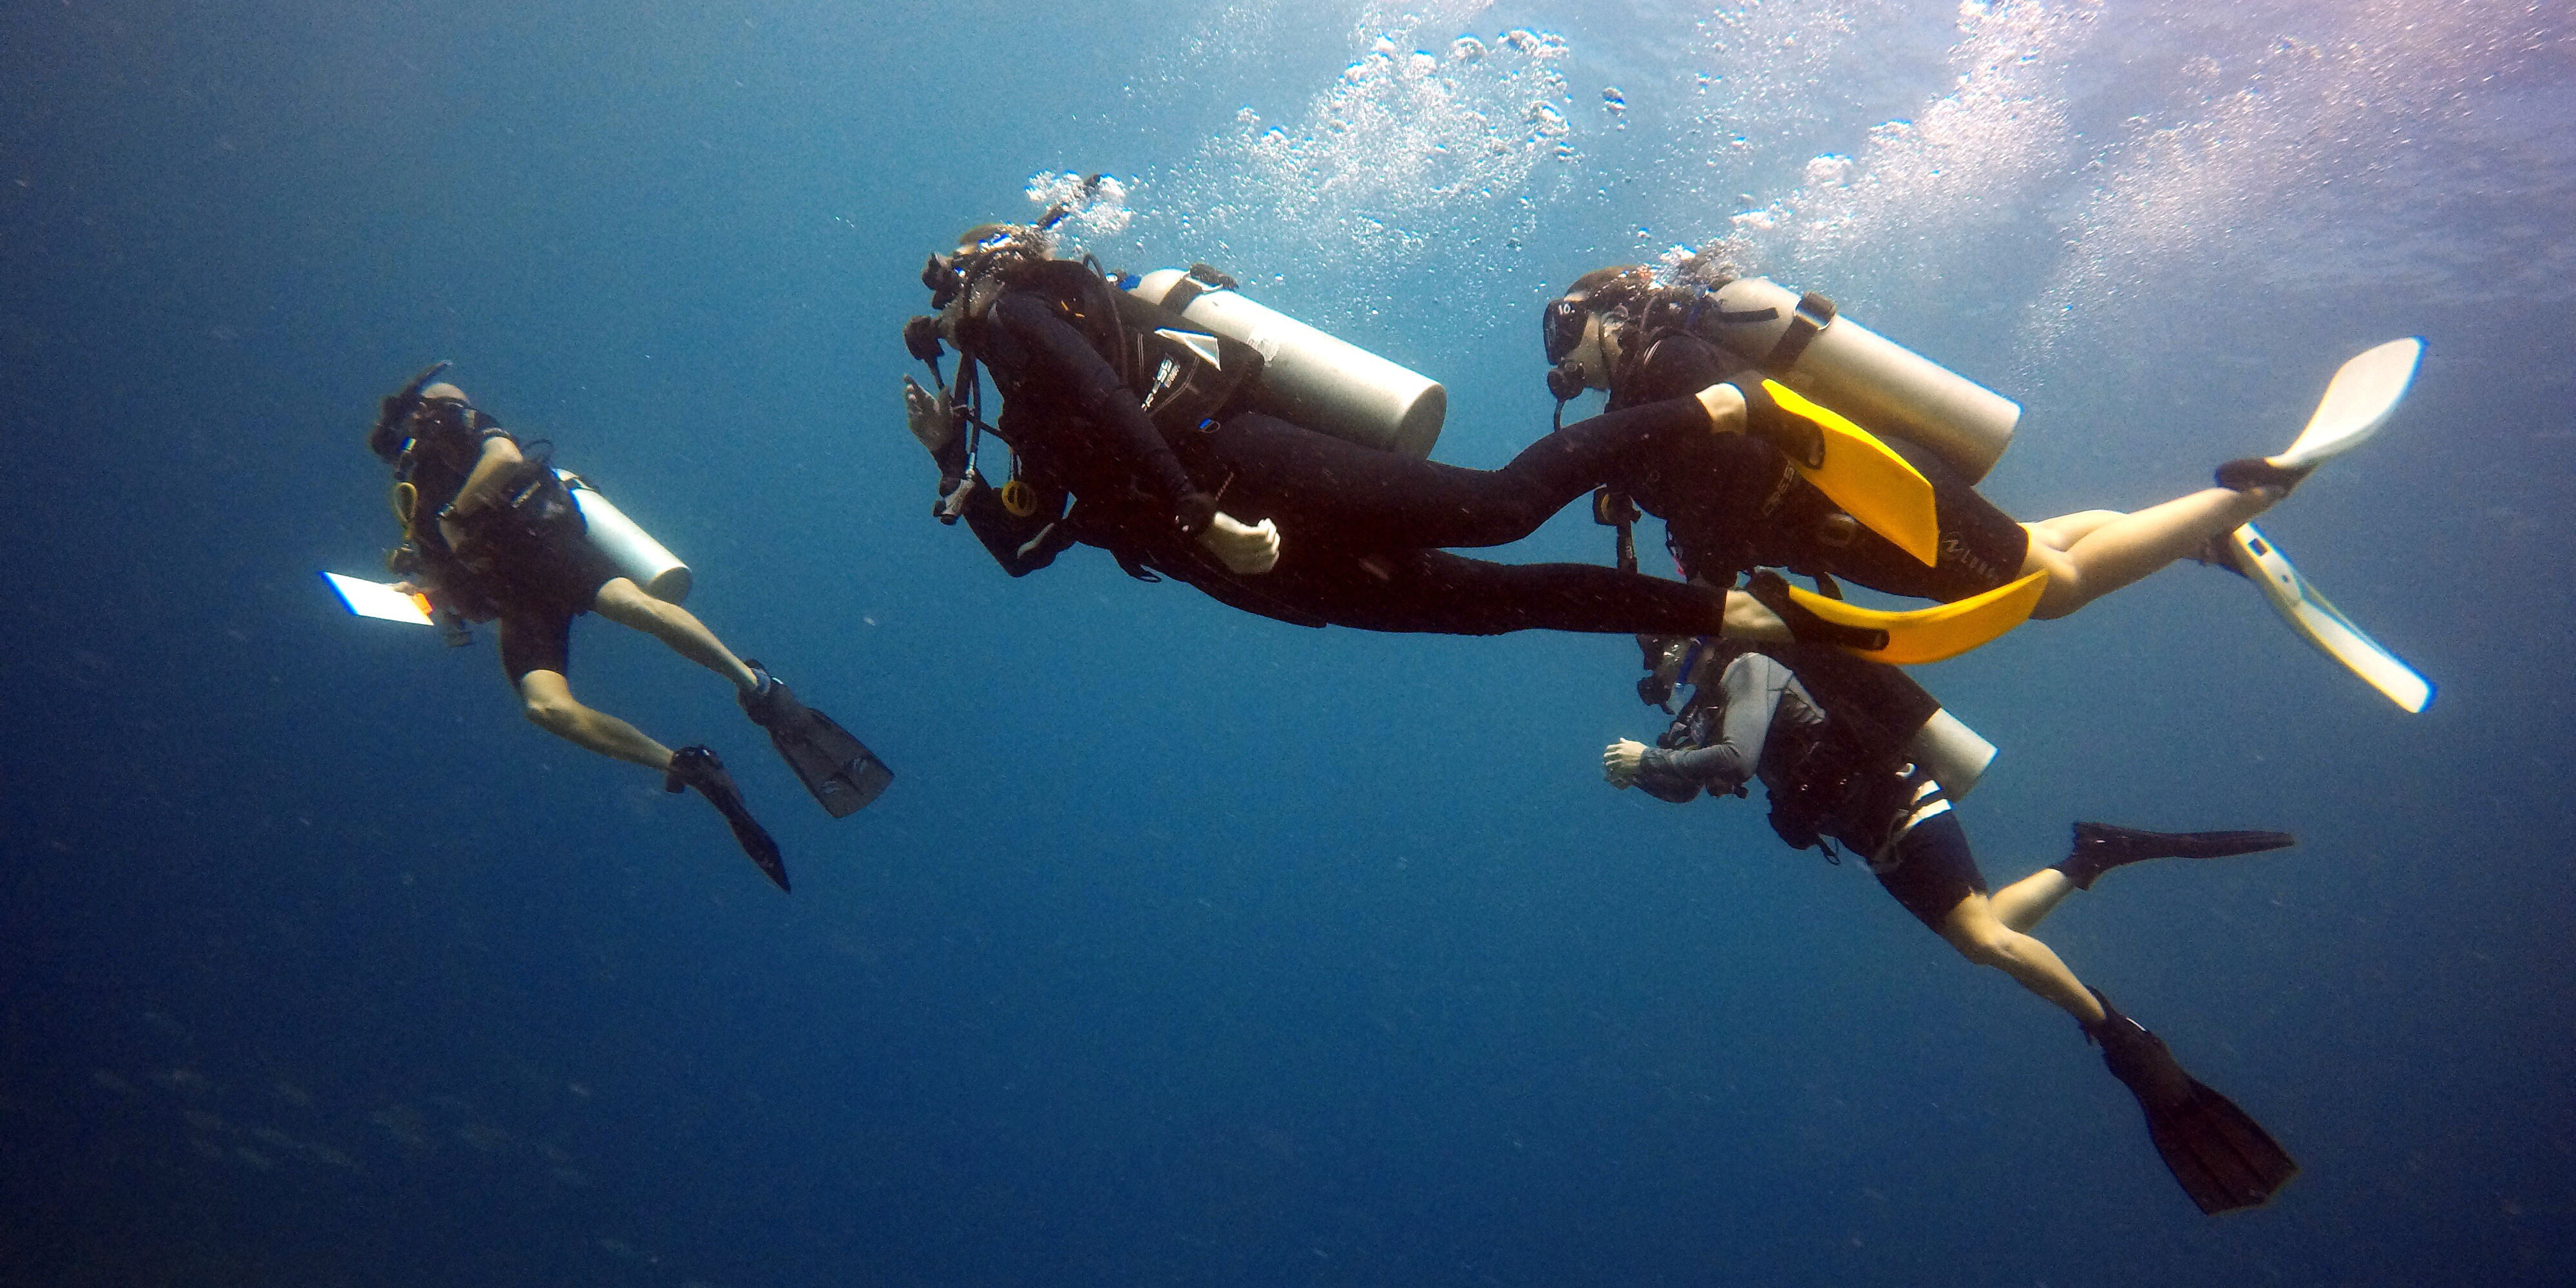 GVI participants work towards their PADI dive certification while collecting data on marine life in Seychelles.